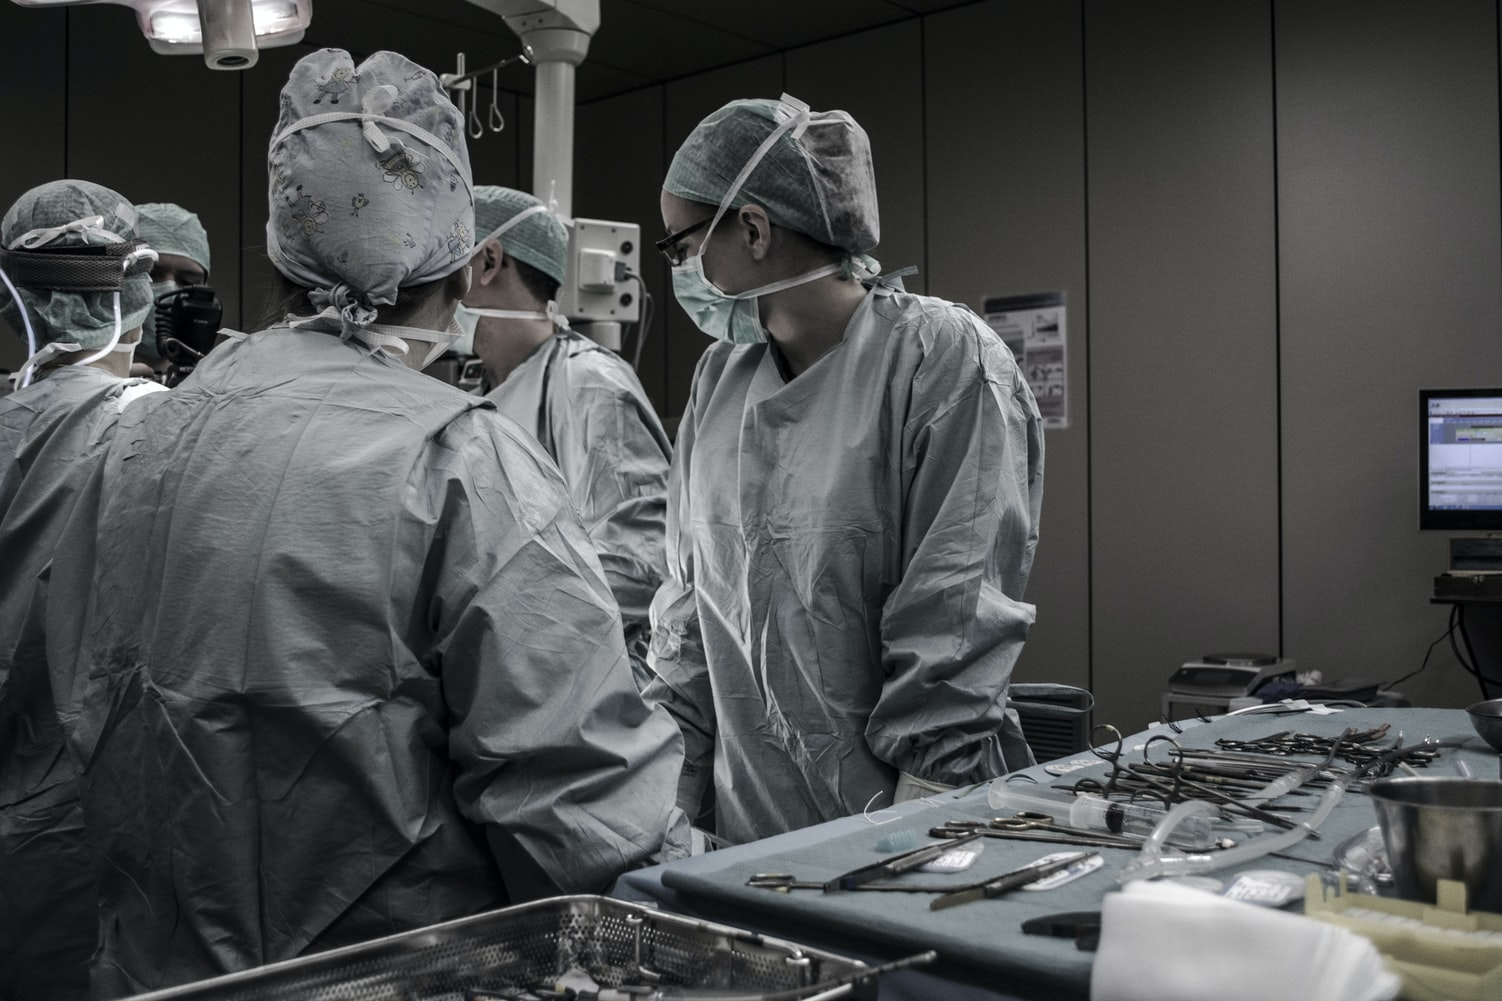 A group of medical personnel having an operation